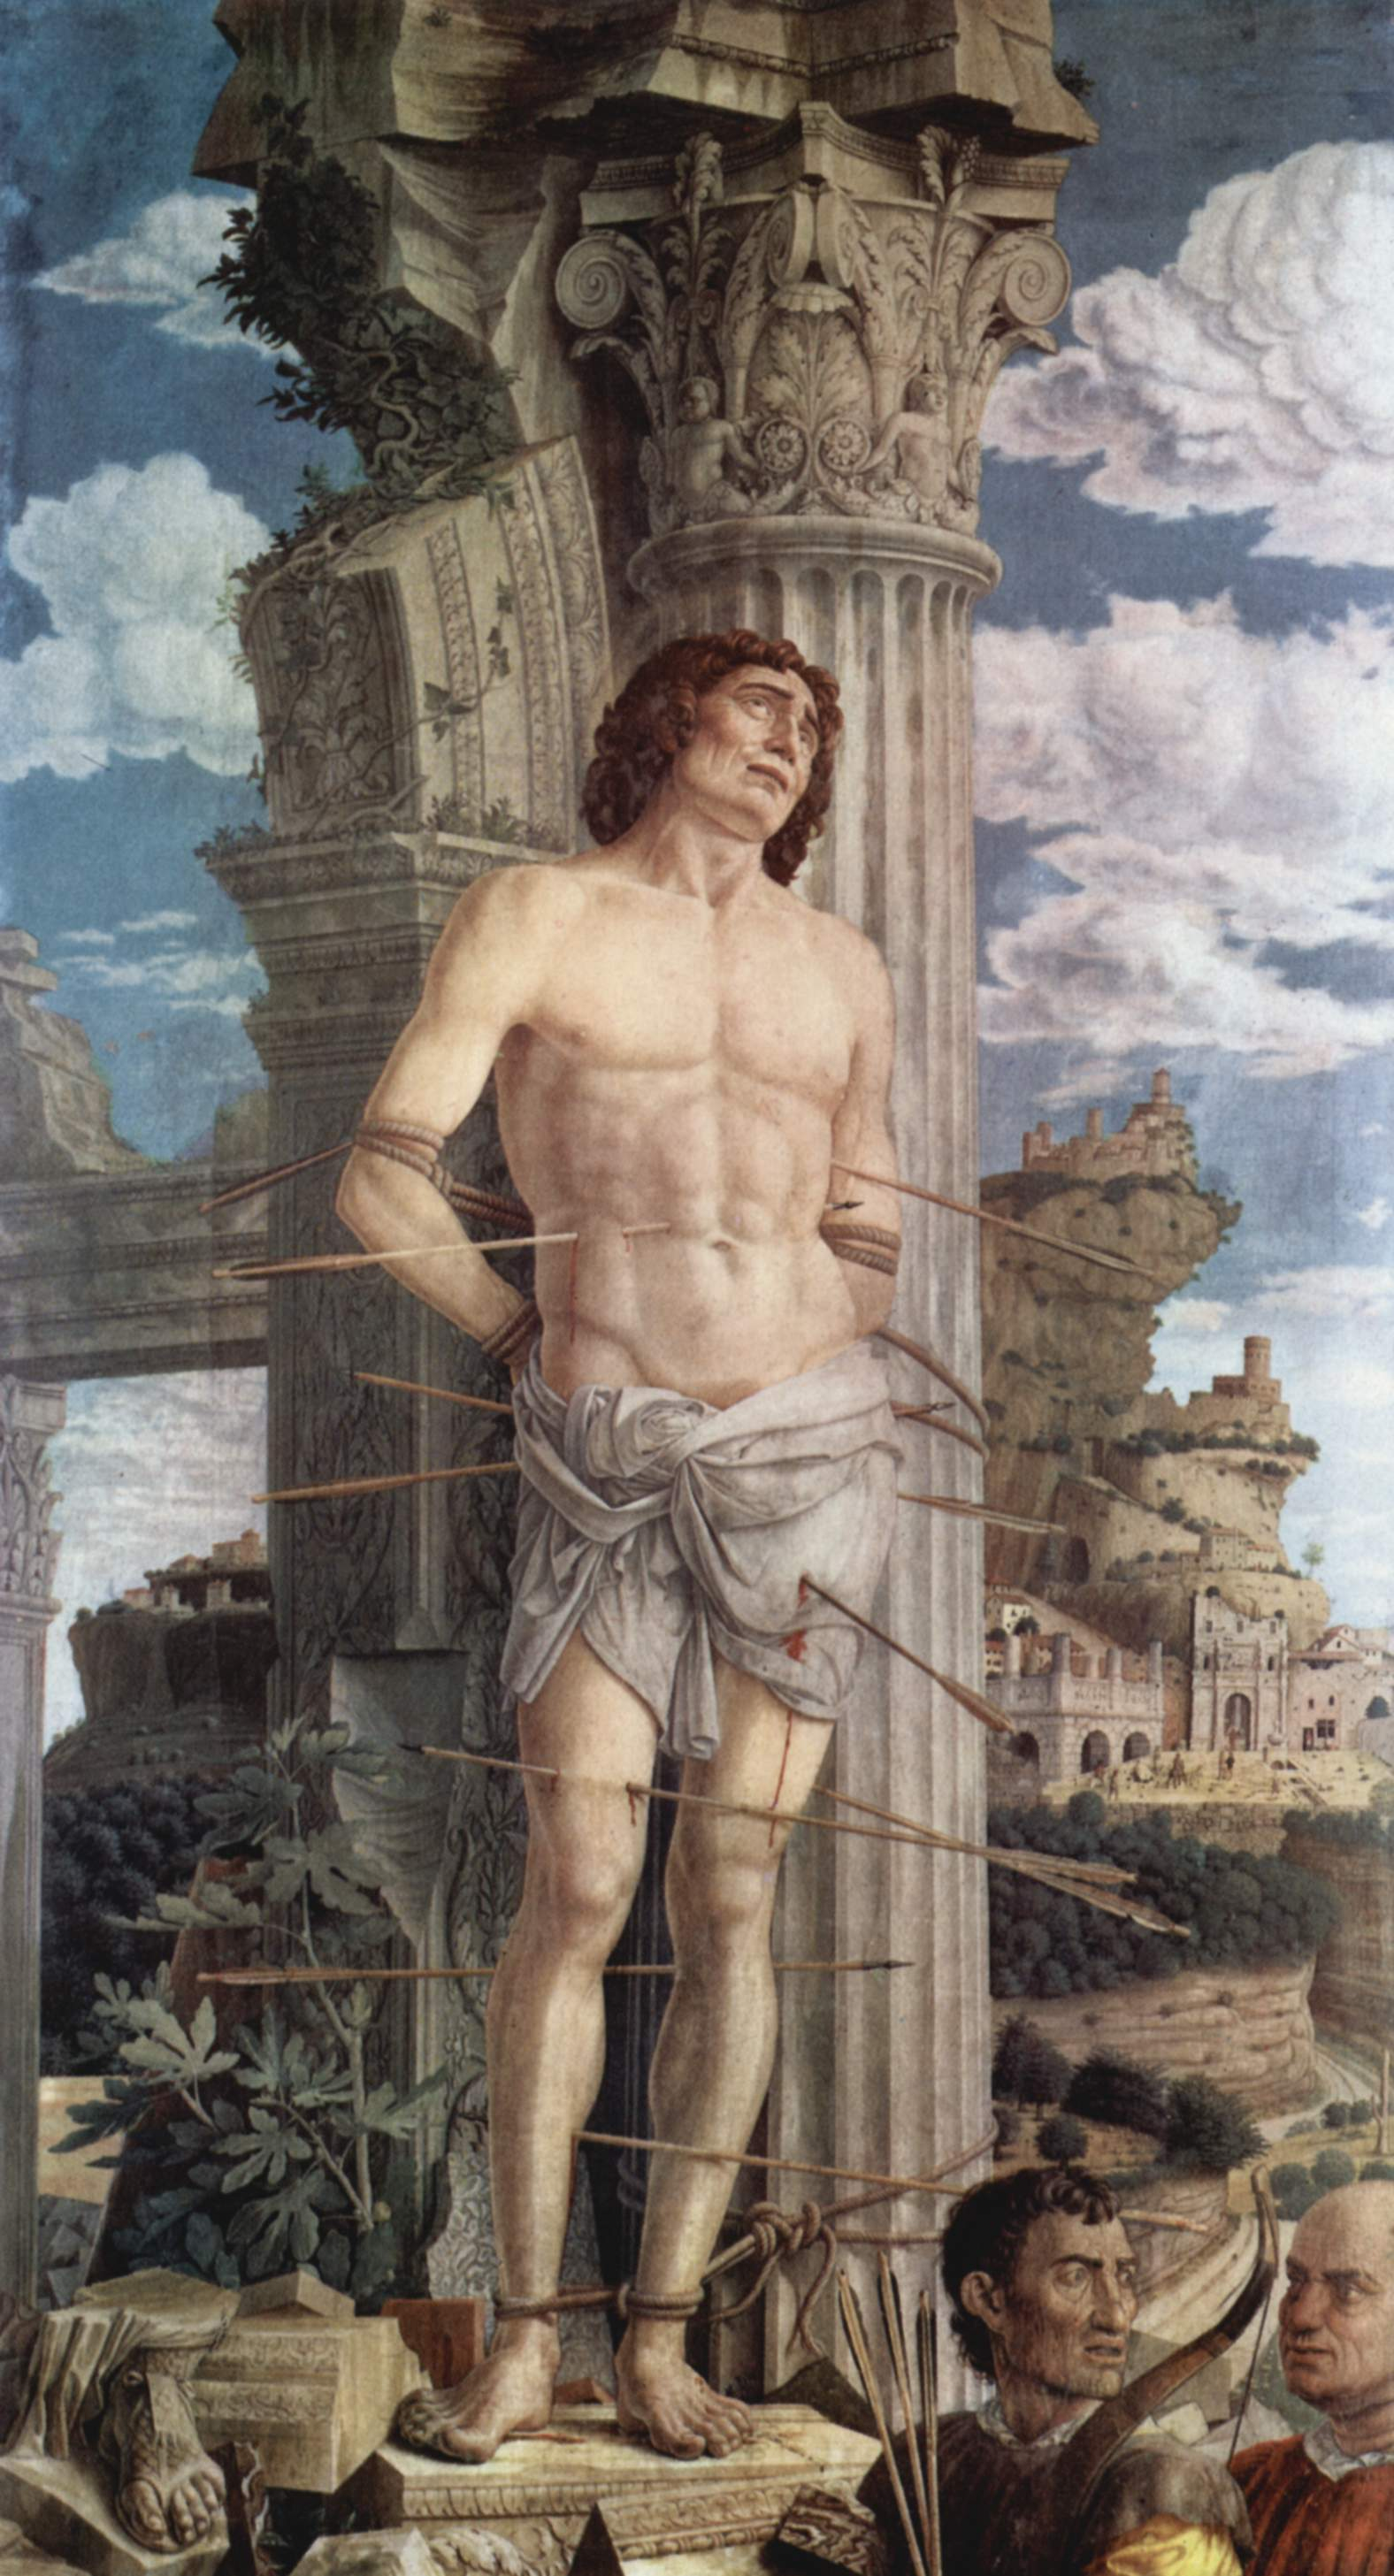 https://upload.wikimedia.org/wikipedia/commons/c/c1/Andrea_Mantegna_088.jpg